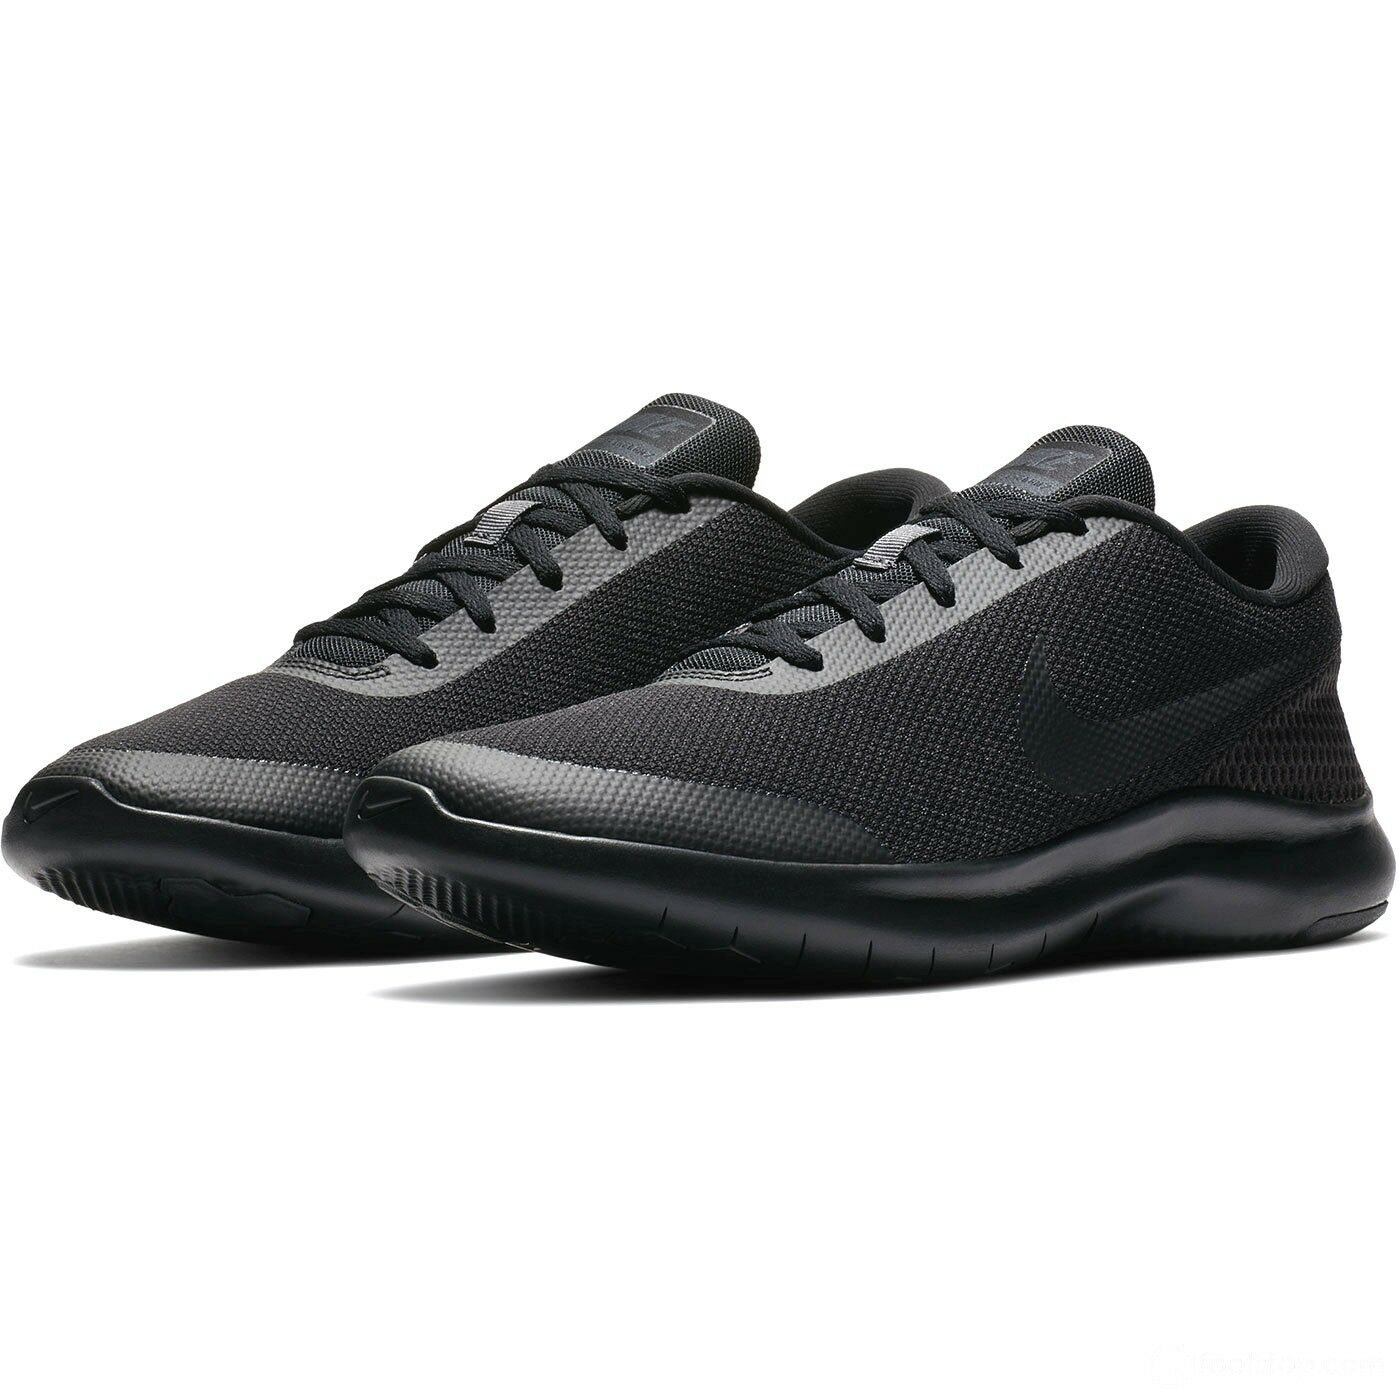 Nike Flex Experience RN 7 VII Run Black Anthracite Men Running Shoes 908985-002 New shoes for men and women, limited time discount